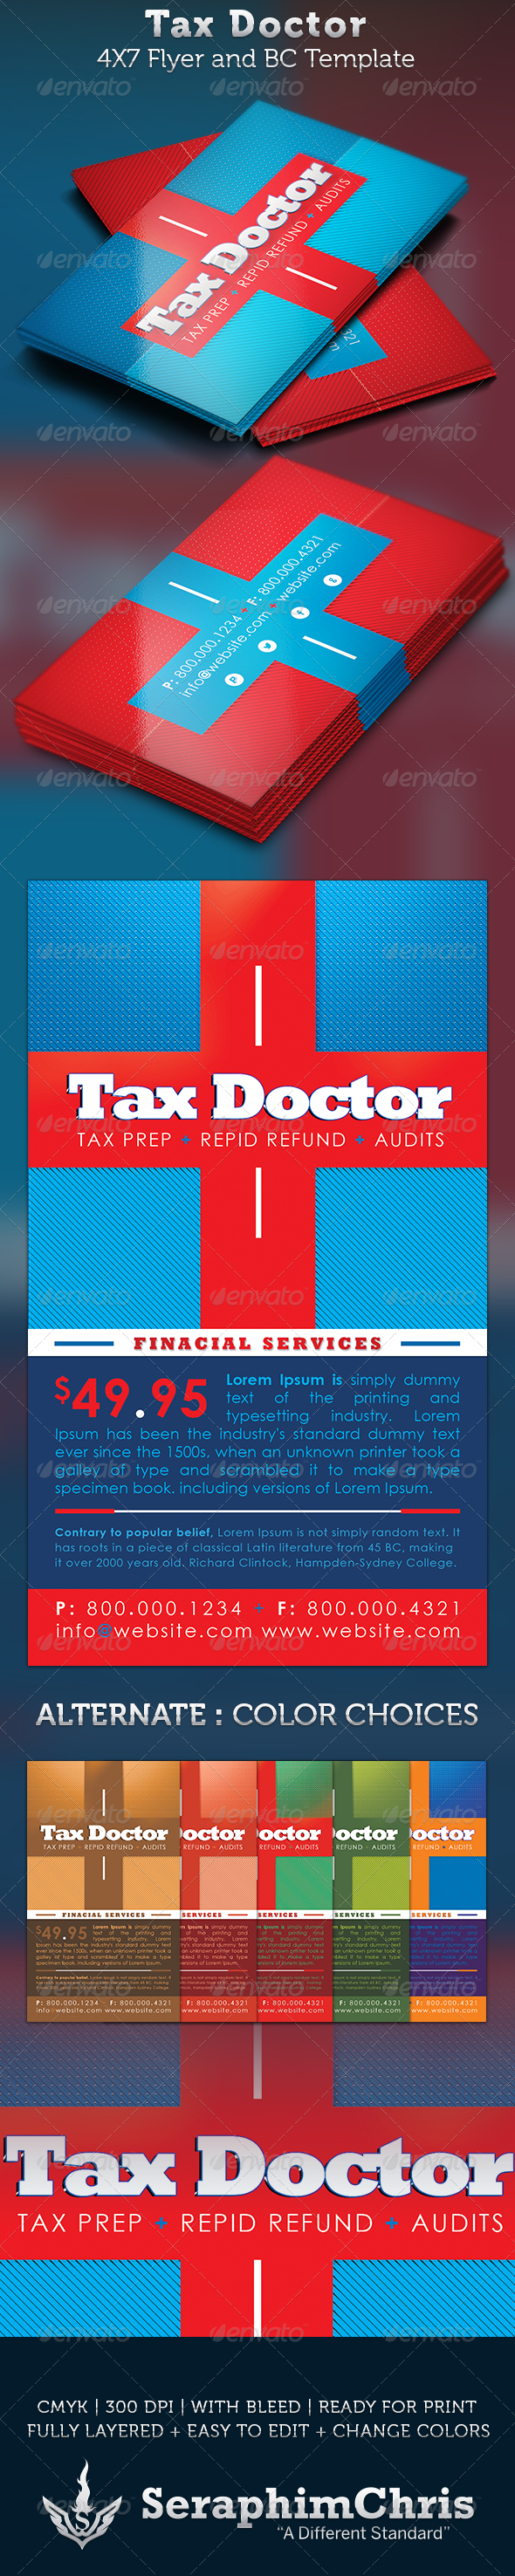 Tax Doctor Business Card and Flyer Template by SeraphimChris ...